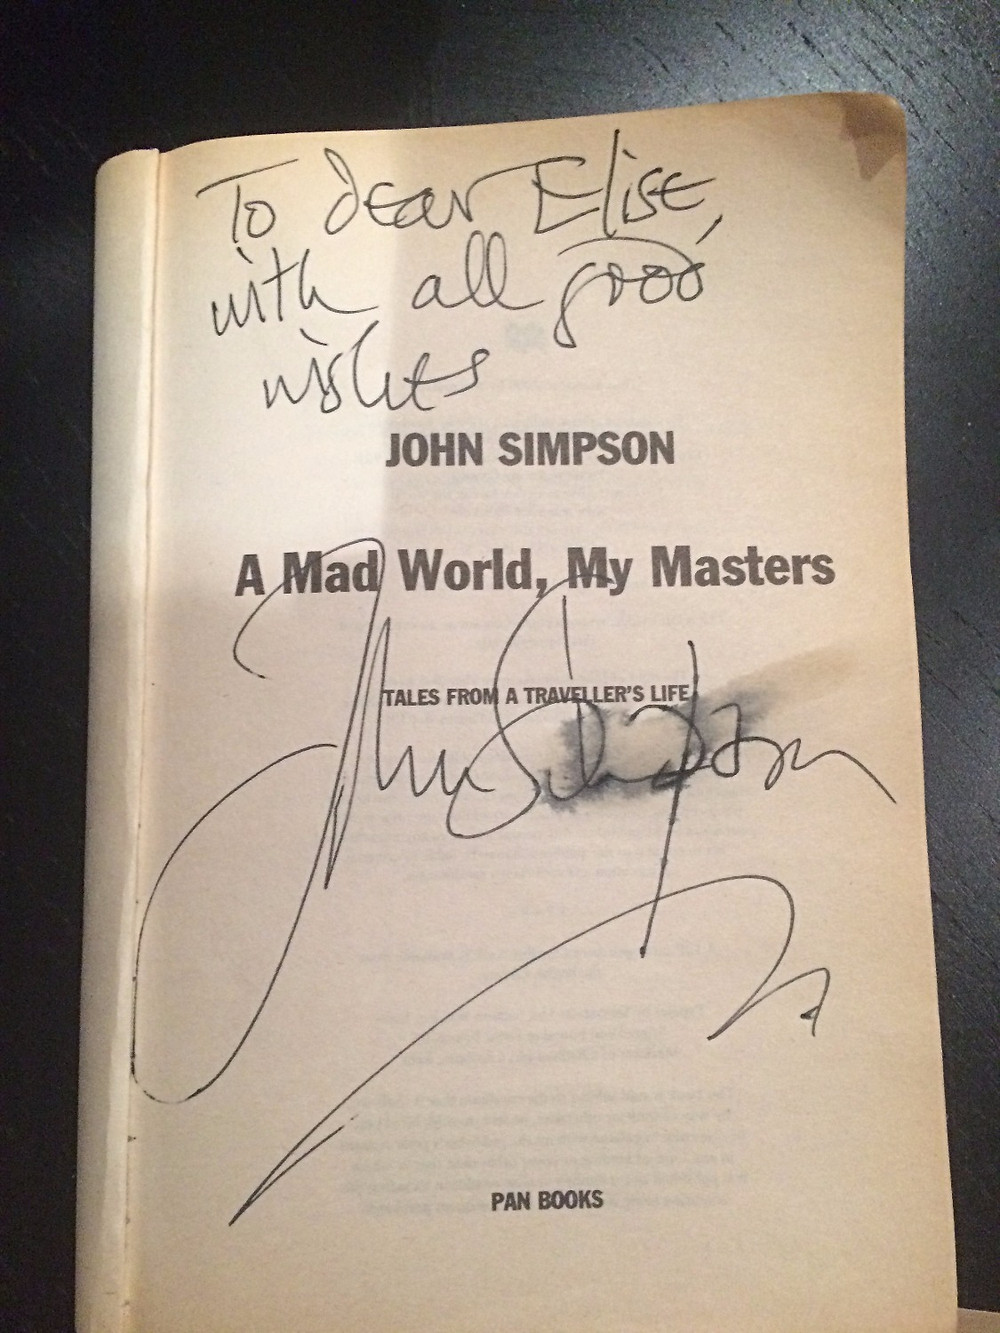 My signed copy of A Mad World My Masters by John Simpson